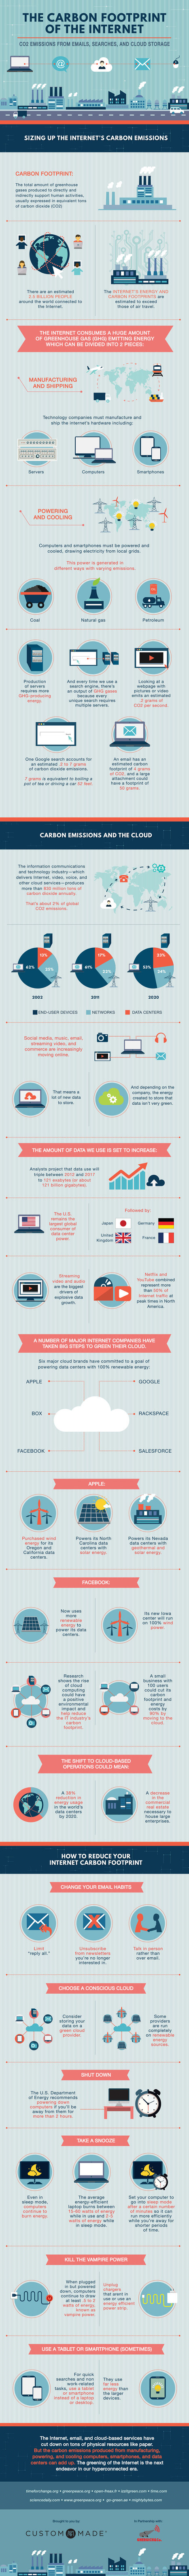 What's the carbon footprint of the Internet? [Infographic] | green infographics | Scoop.it